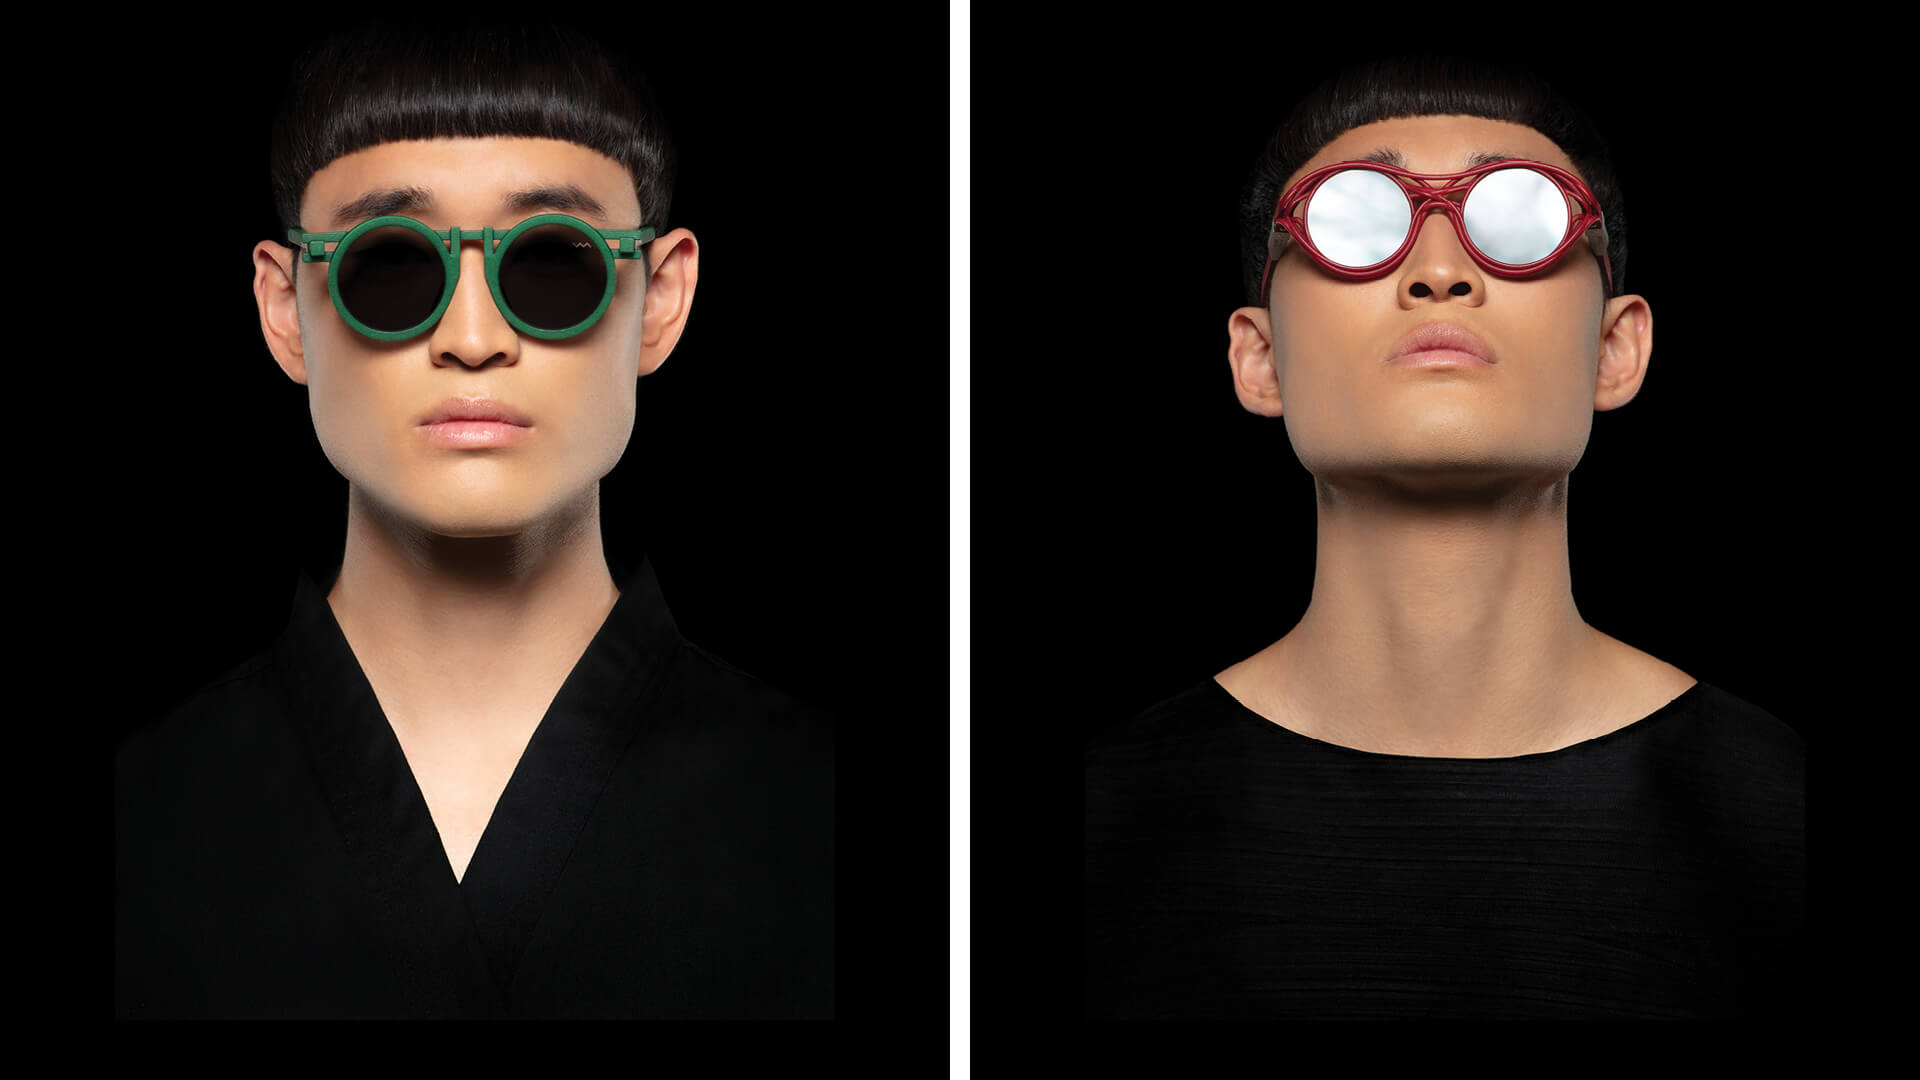 CL0013 in green and CL0015 in red from the capsule collection by Kengo Kuma in collaboration with Portugese eyewear brand VAVA  | VAVA x Kengo Kuma eyewear capsule collection | STIRworld